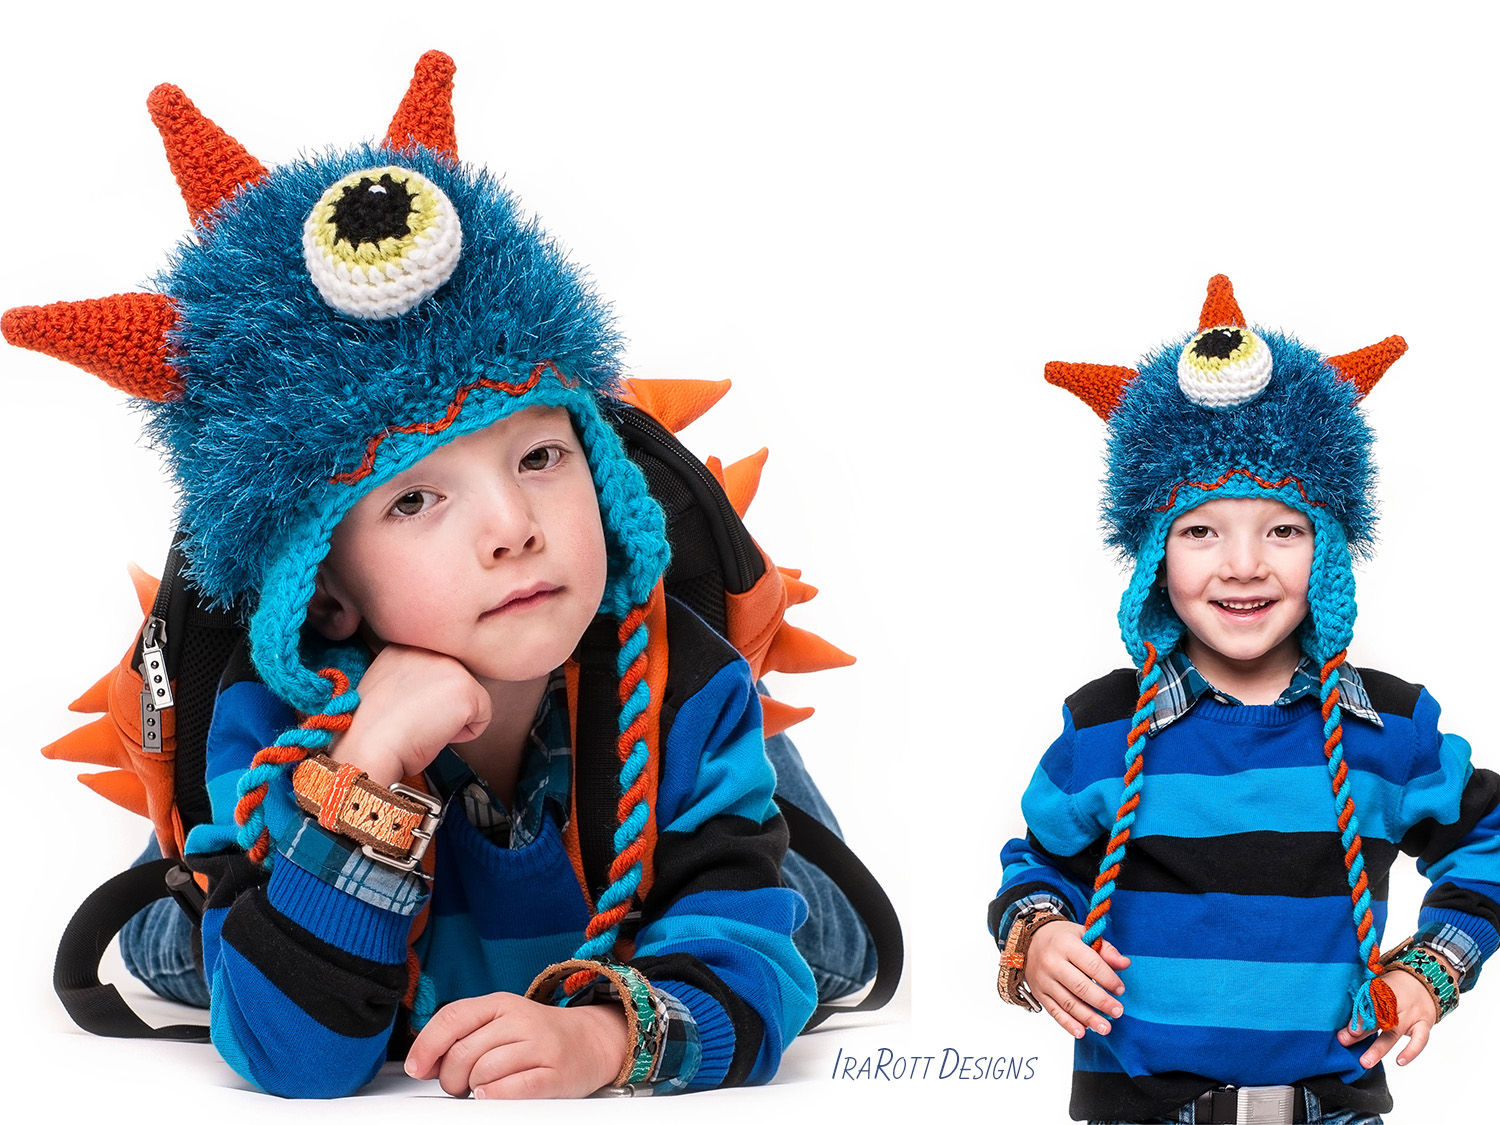 PDF Crochet Pattern for making a Furry Sea Monster Hat with Horns for all sizes